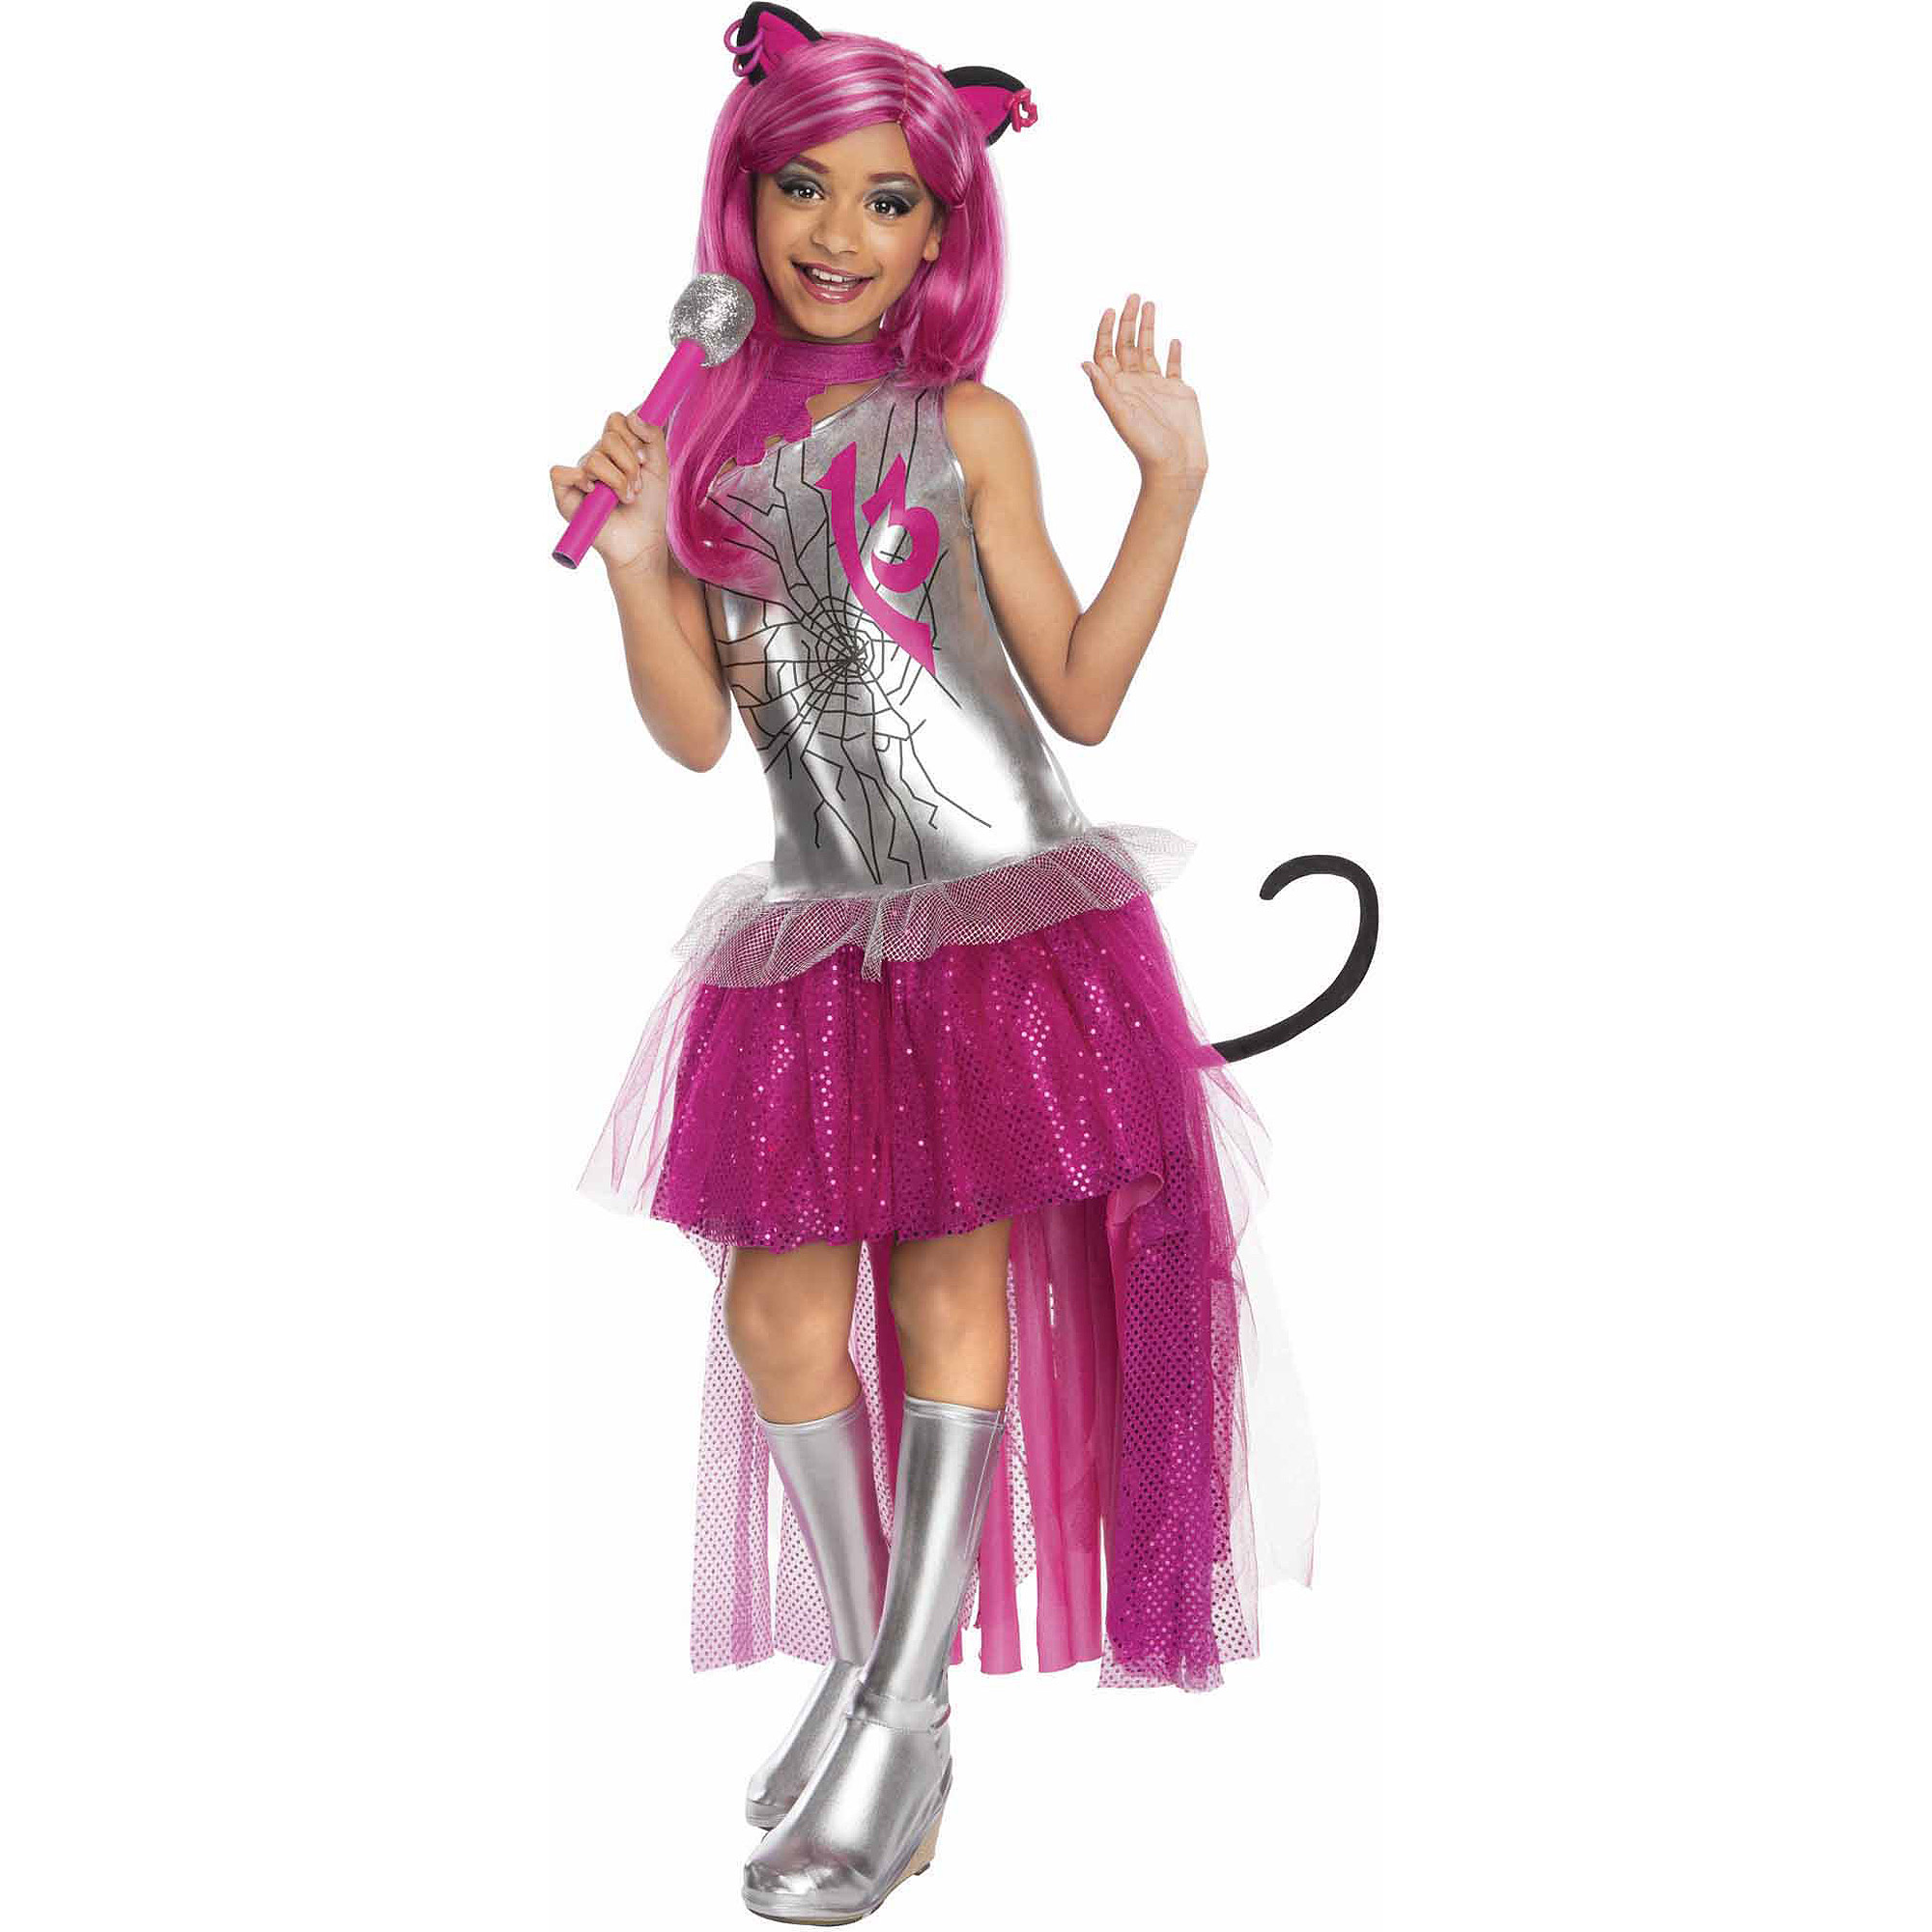 Monster High Catty Noir Child Dress Up Costume  sc 1 st  Walmart & Monster High Catty Noir Child Dress Up Costume - Walmart.com